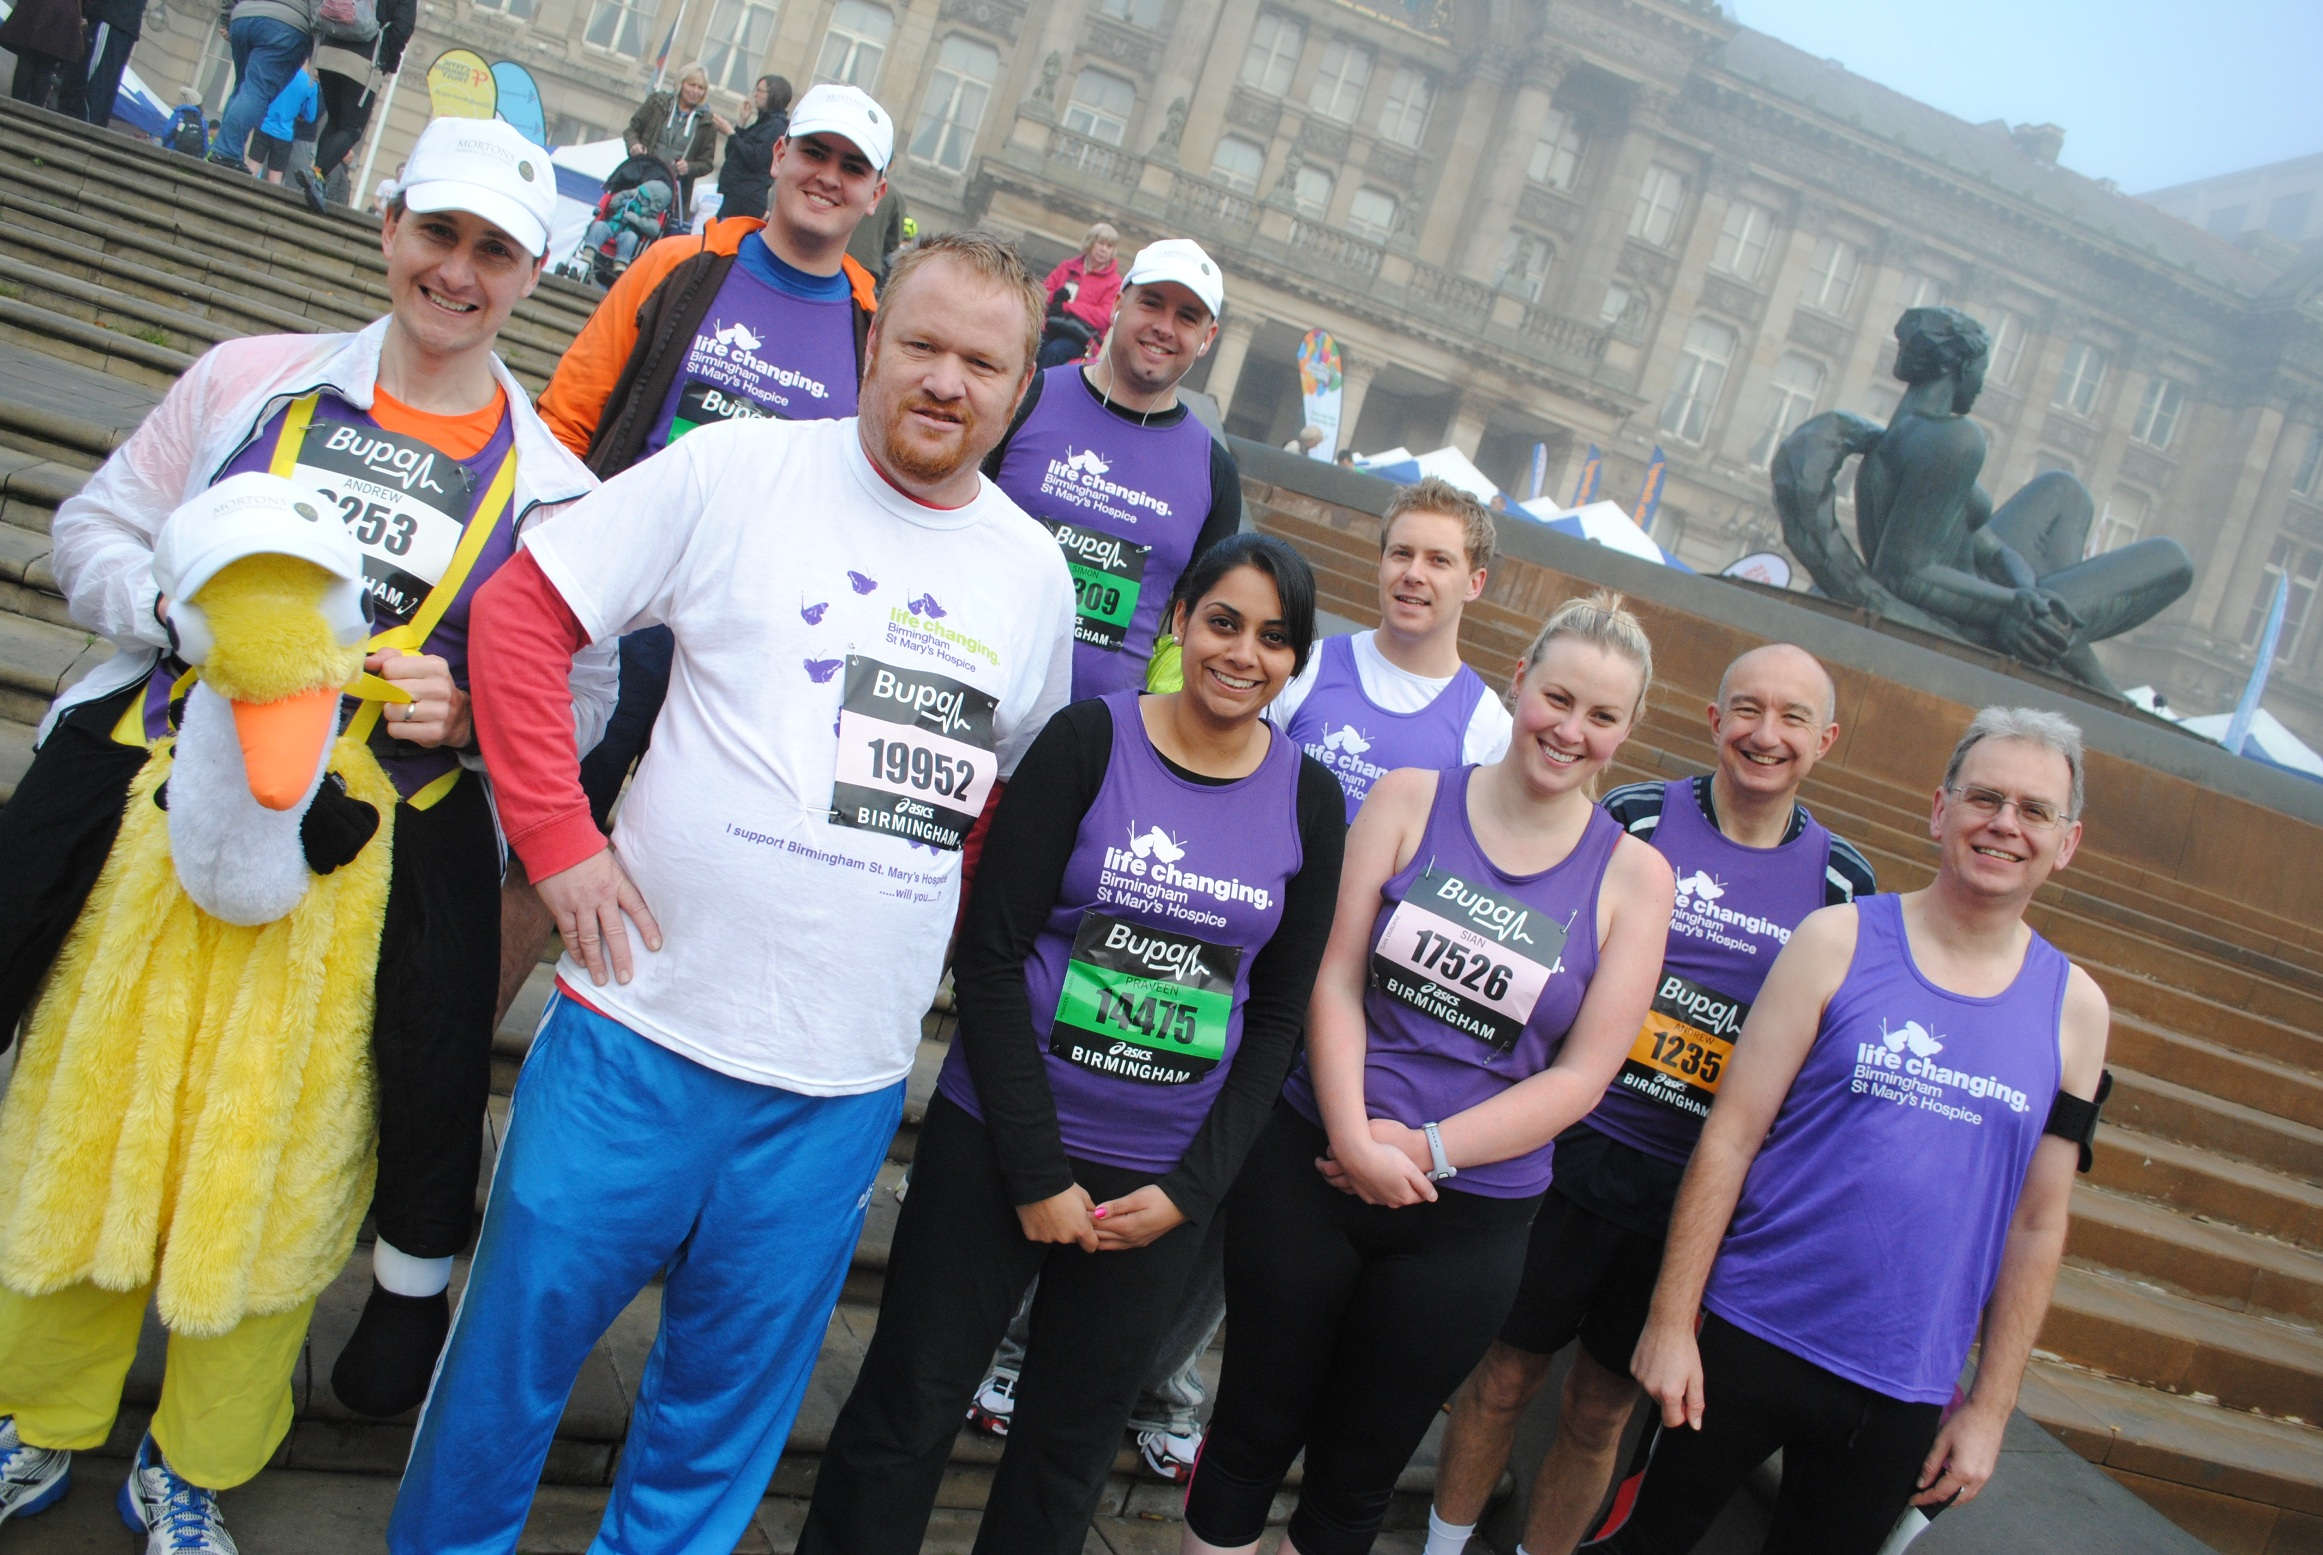 Runners get ready for the Great Birmingham Run in 2012 which raised over £30k for Birmingham St Mary's Hospice